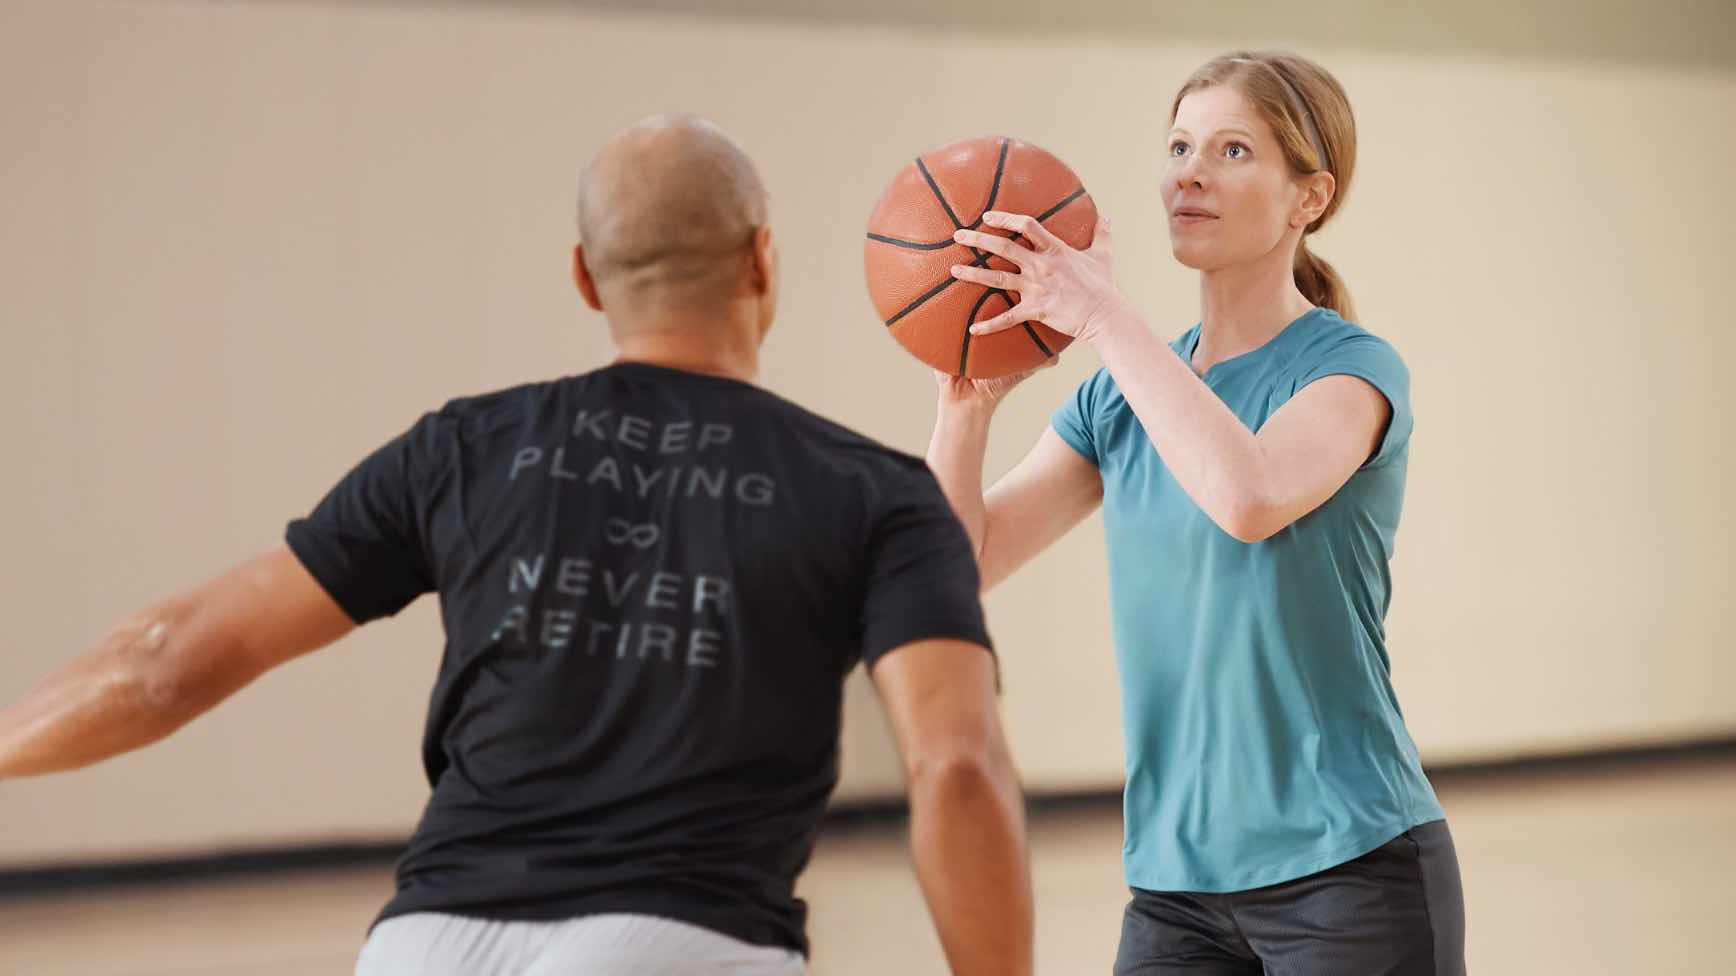 Woman shooting basketball with man guarding her